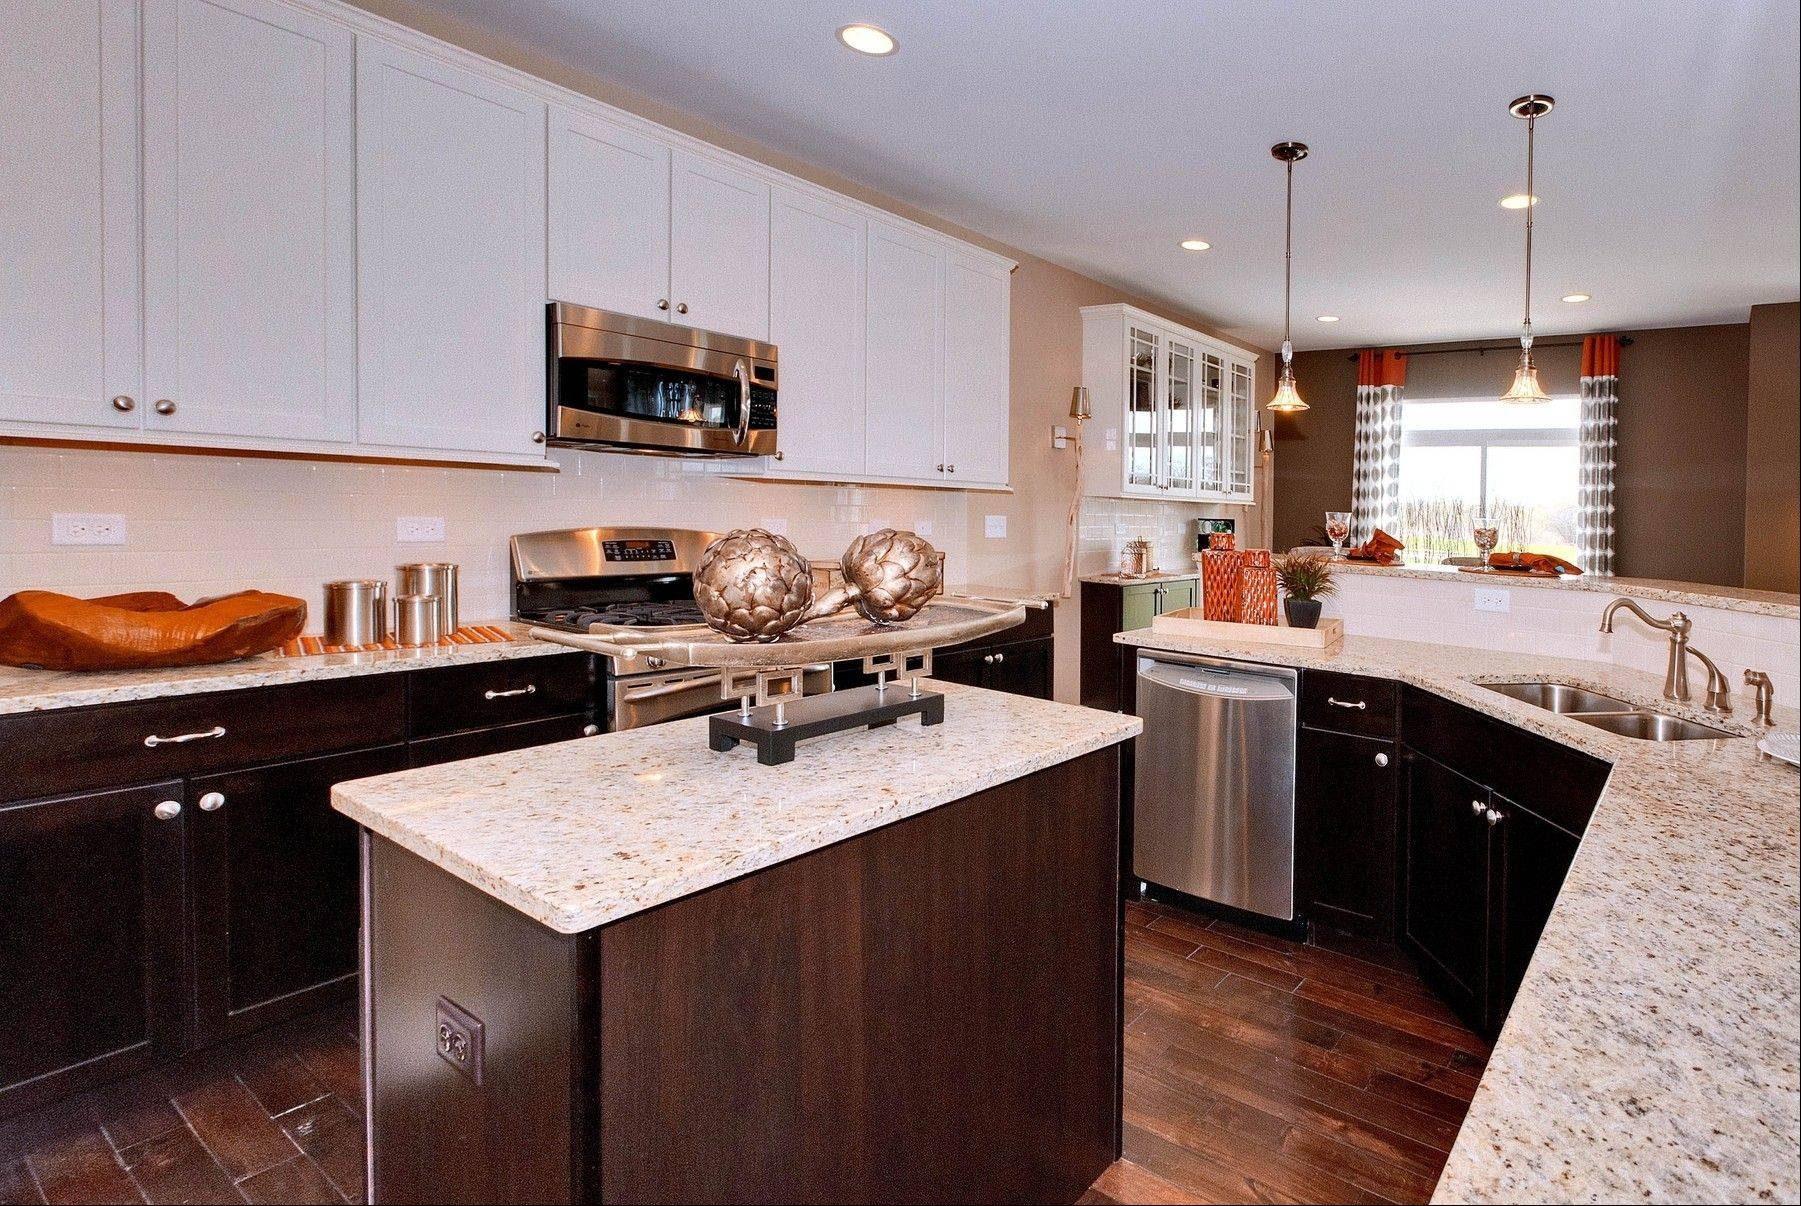 k hovnanian kitchen cabinets new home preview in sync with housing trends 18038